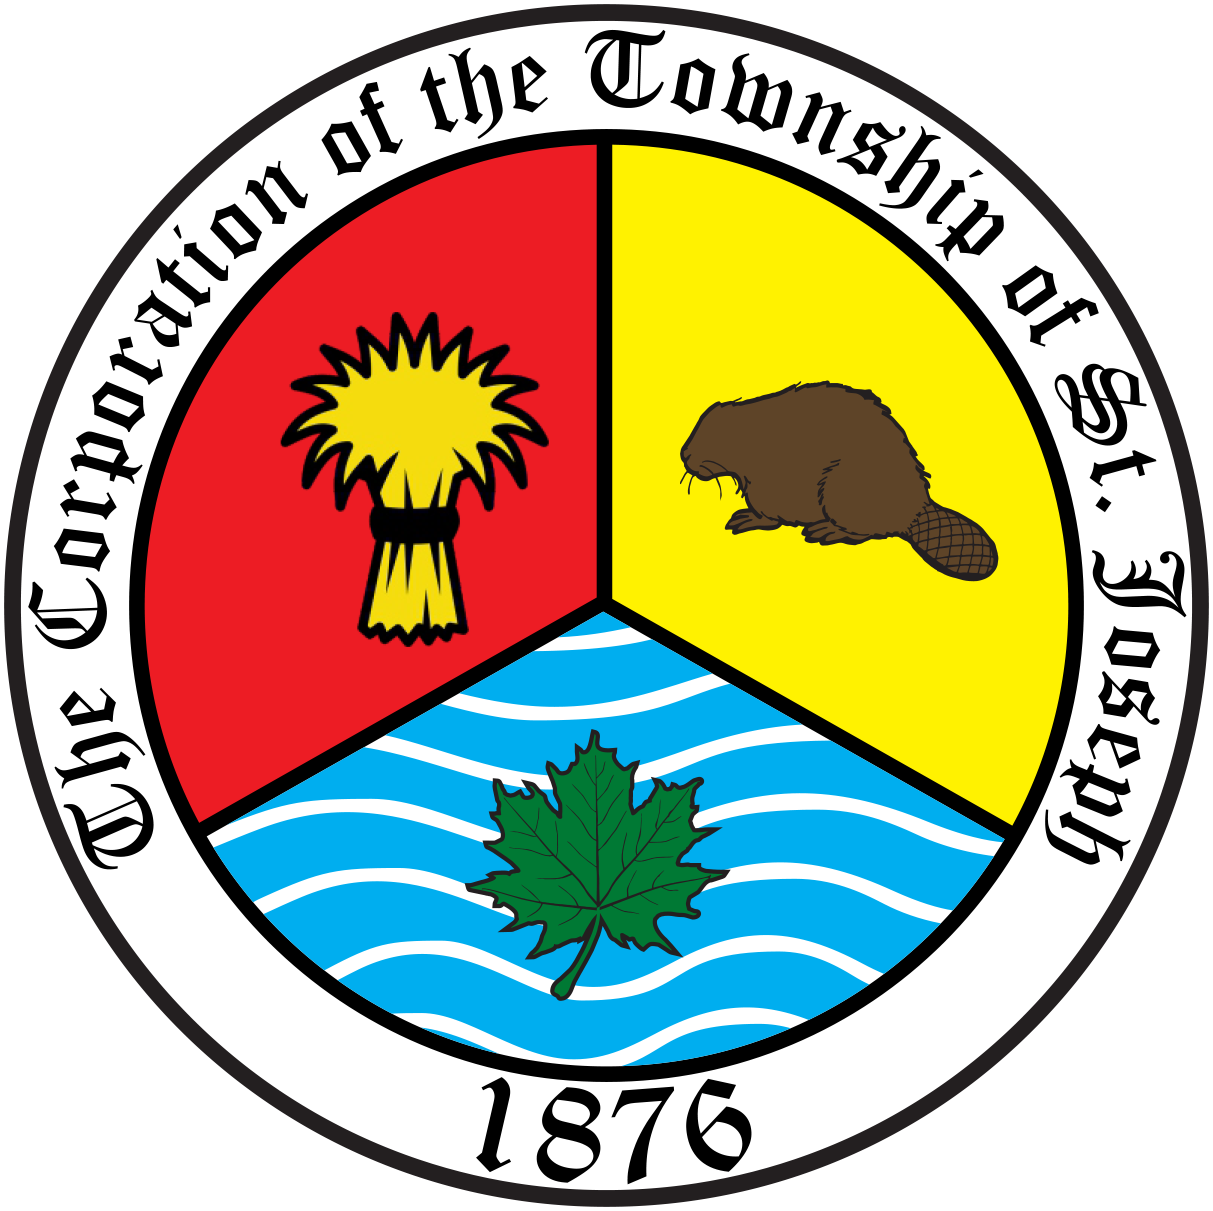 Township of St. Joseph